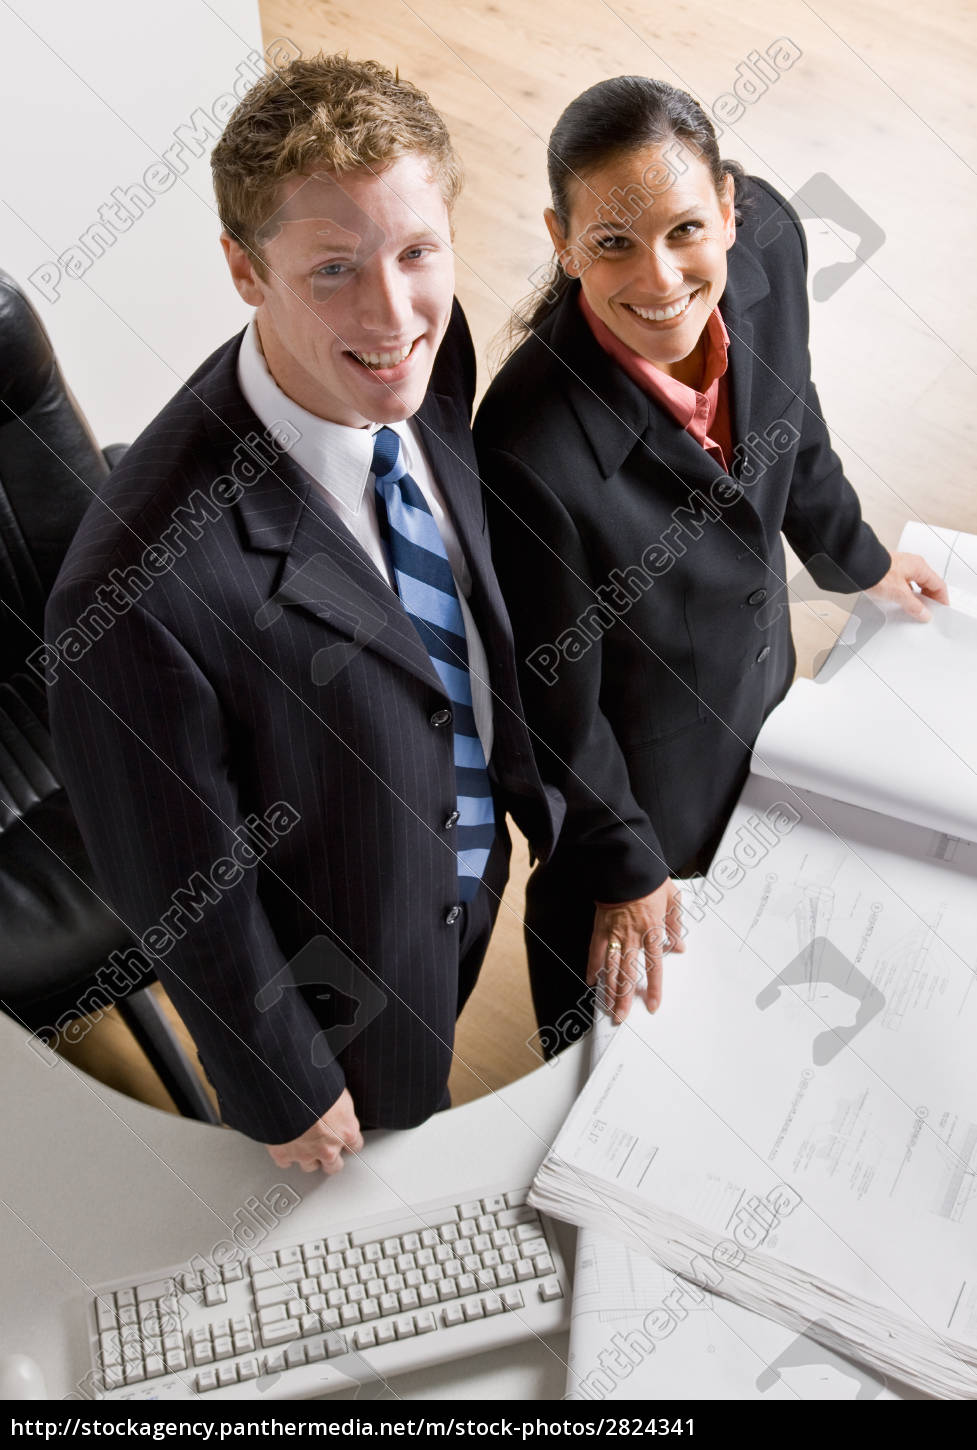 business, people, reviewing, blueprints, together - 2824341